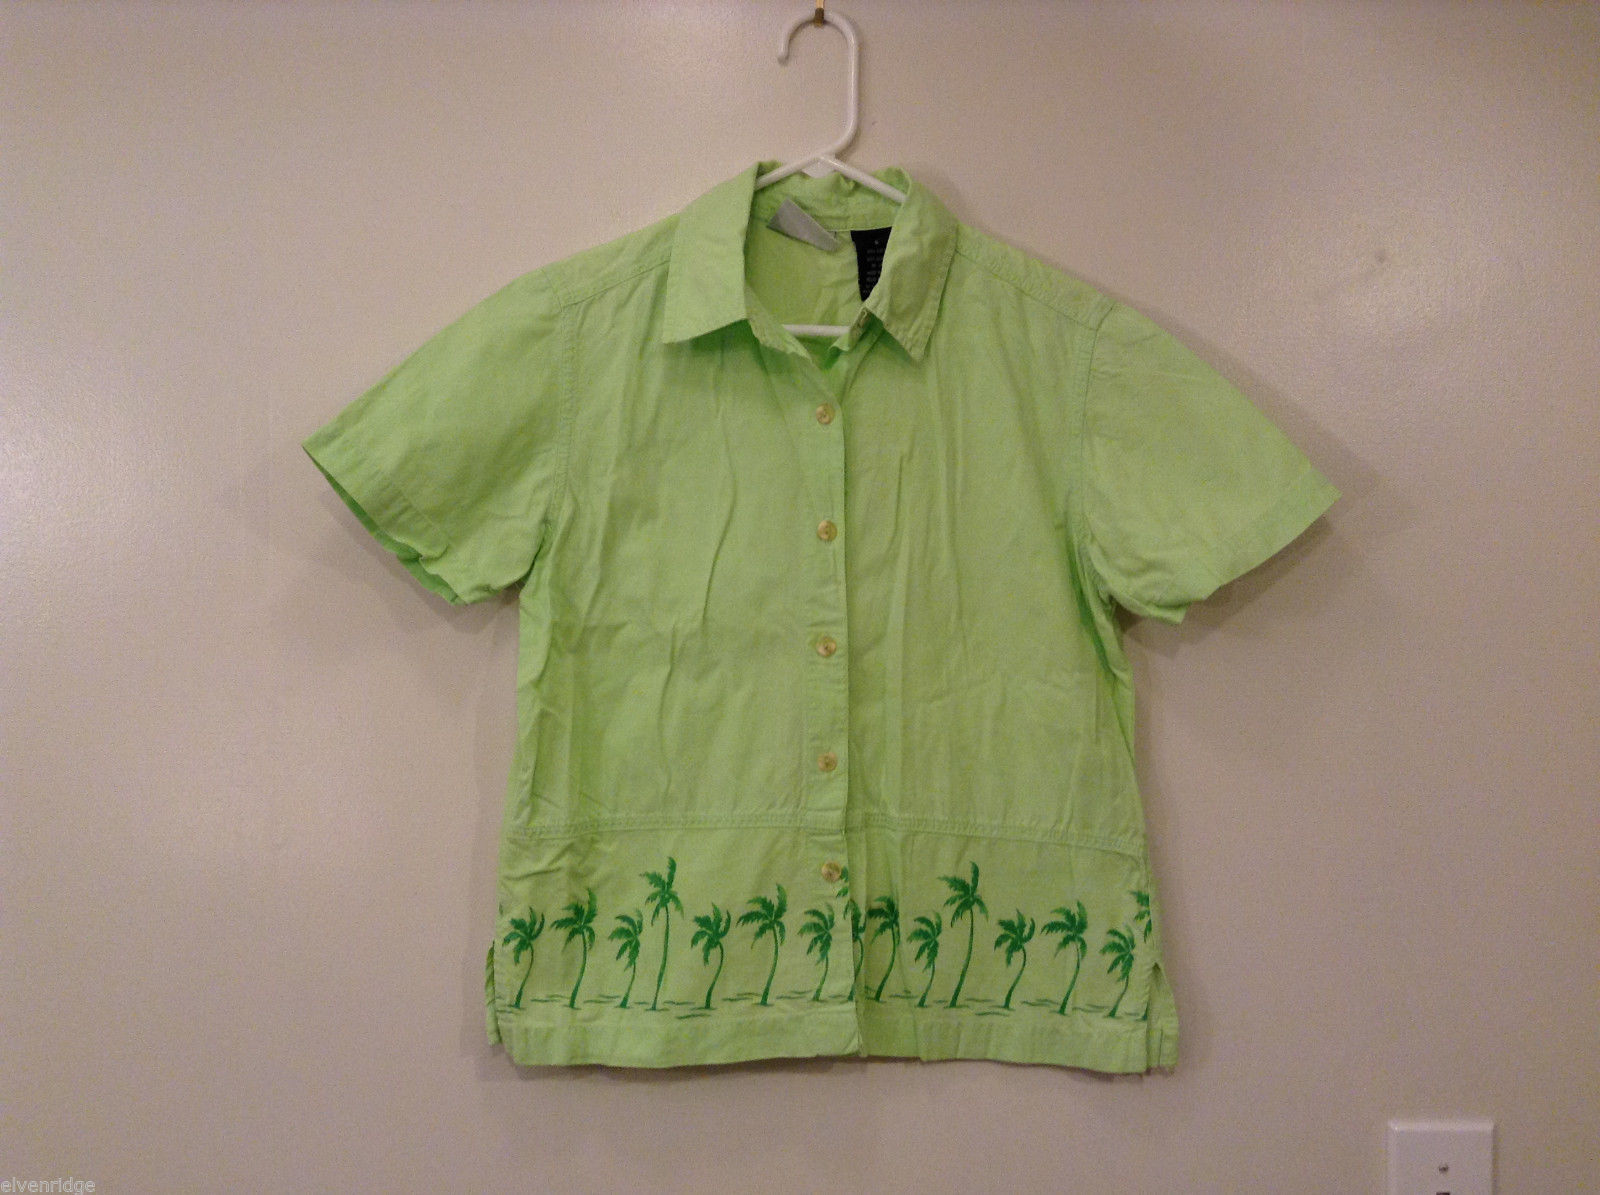 Erika & Co. Women's Size S Blouse Top Collar Shirt Lime Green Palm Print Border